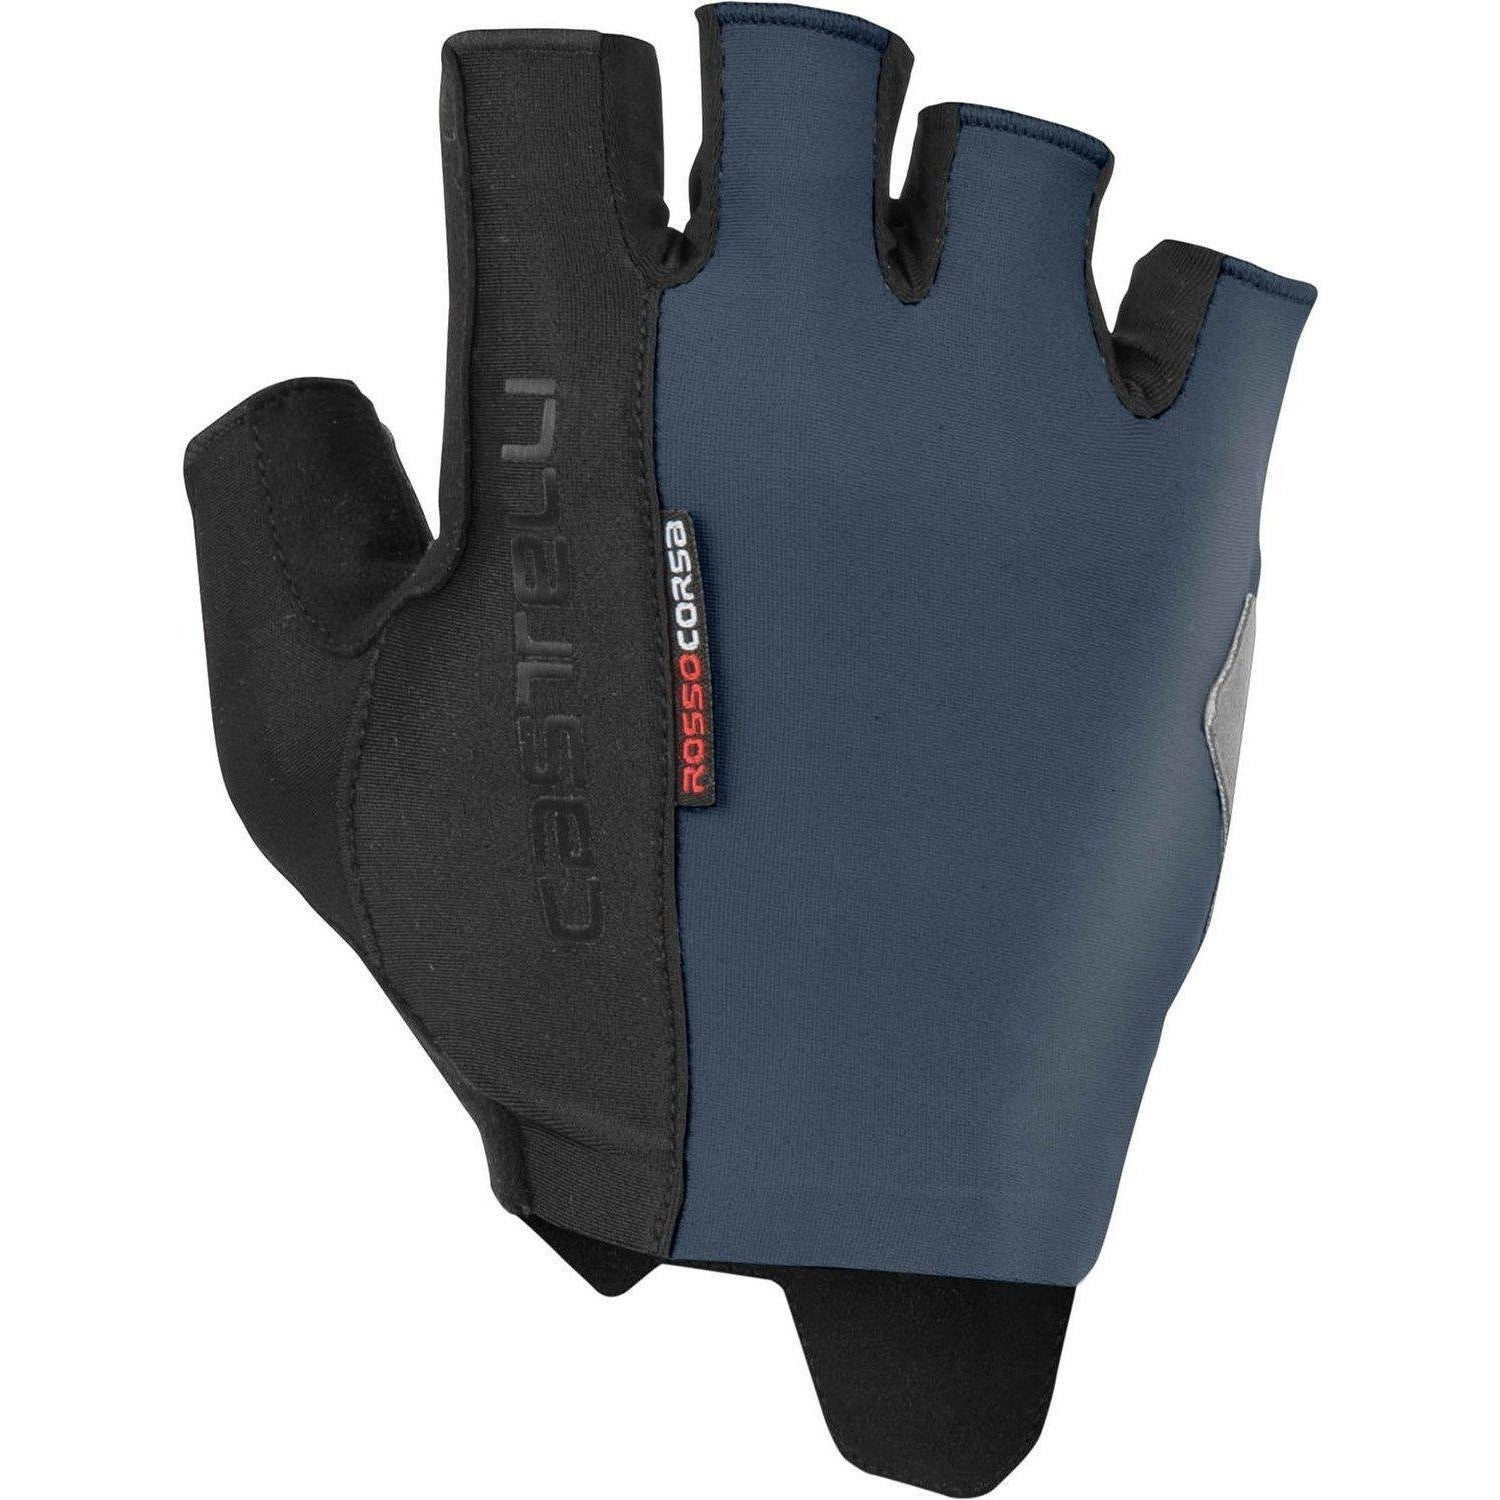 Castelli-Castelli Rosso Corsa Espresso Gloves-Dark Steel Blue-XS-CS190260701-saddleback-elite-performance-cycling